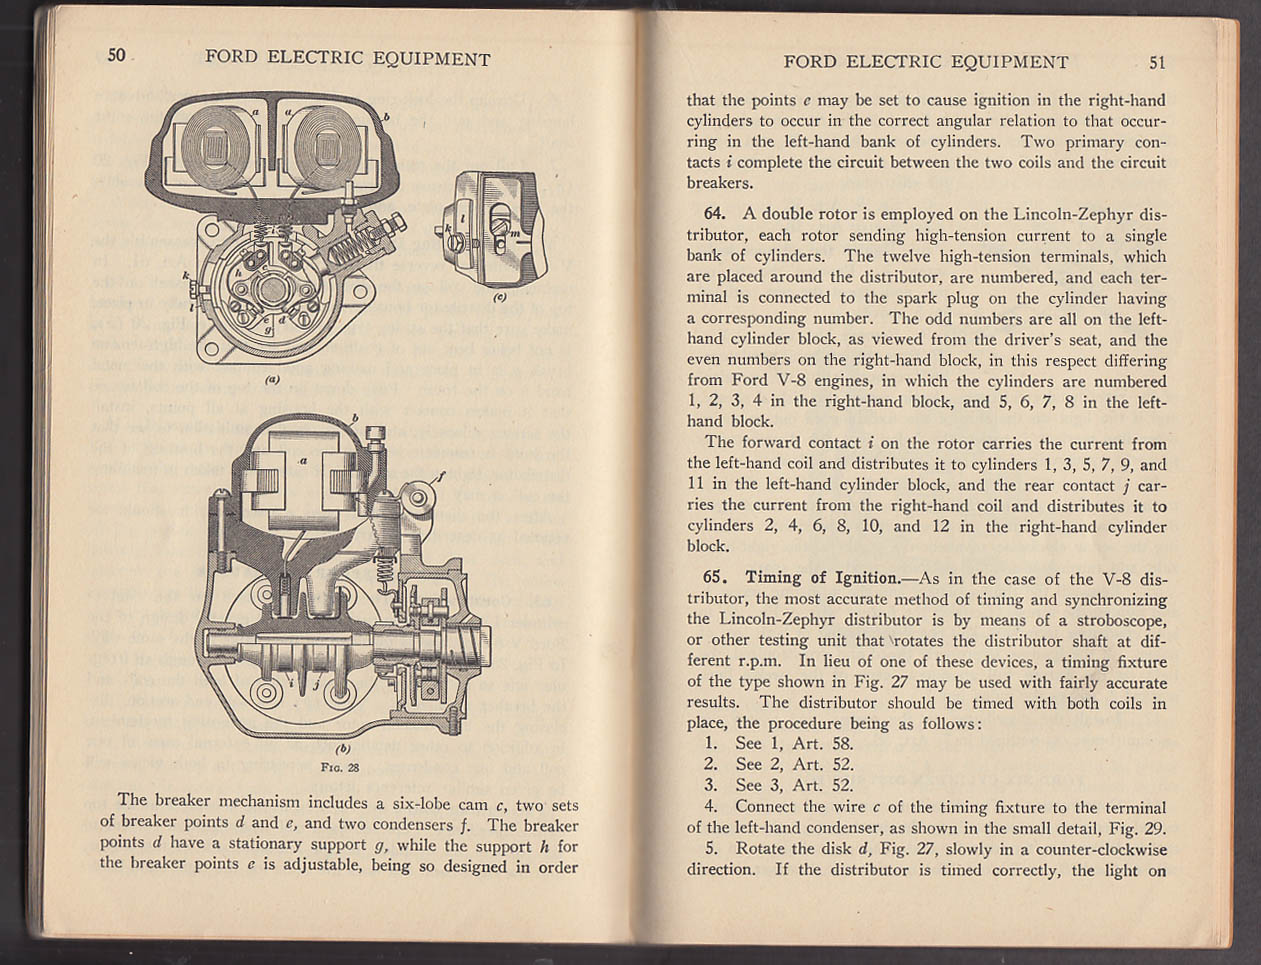 Ford Electric Equipment International Correspondence Schools booklet 1944